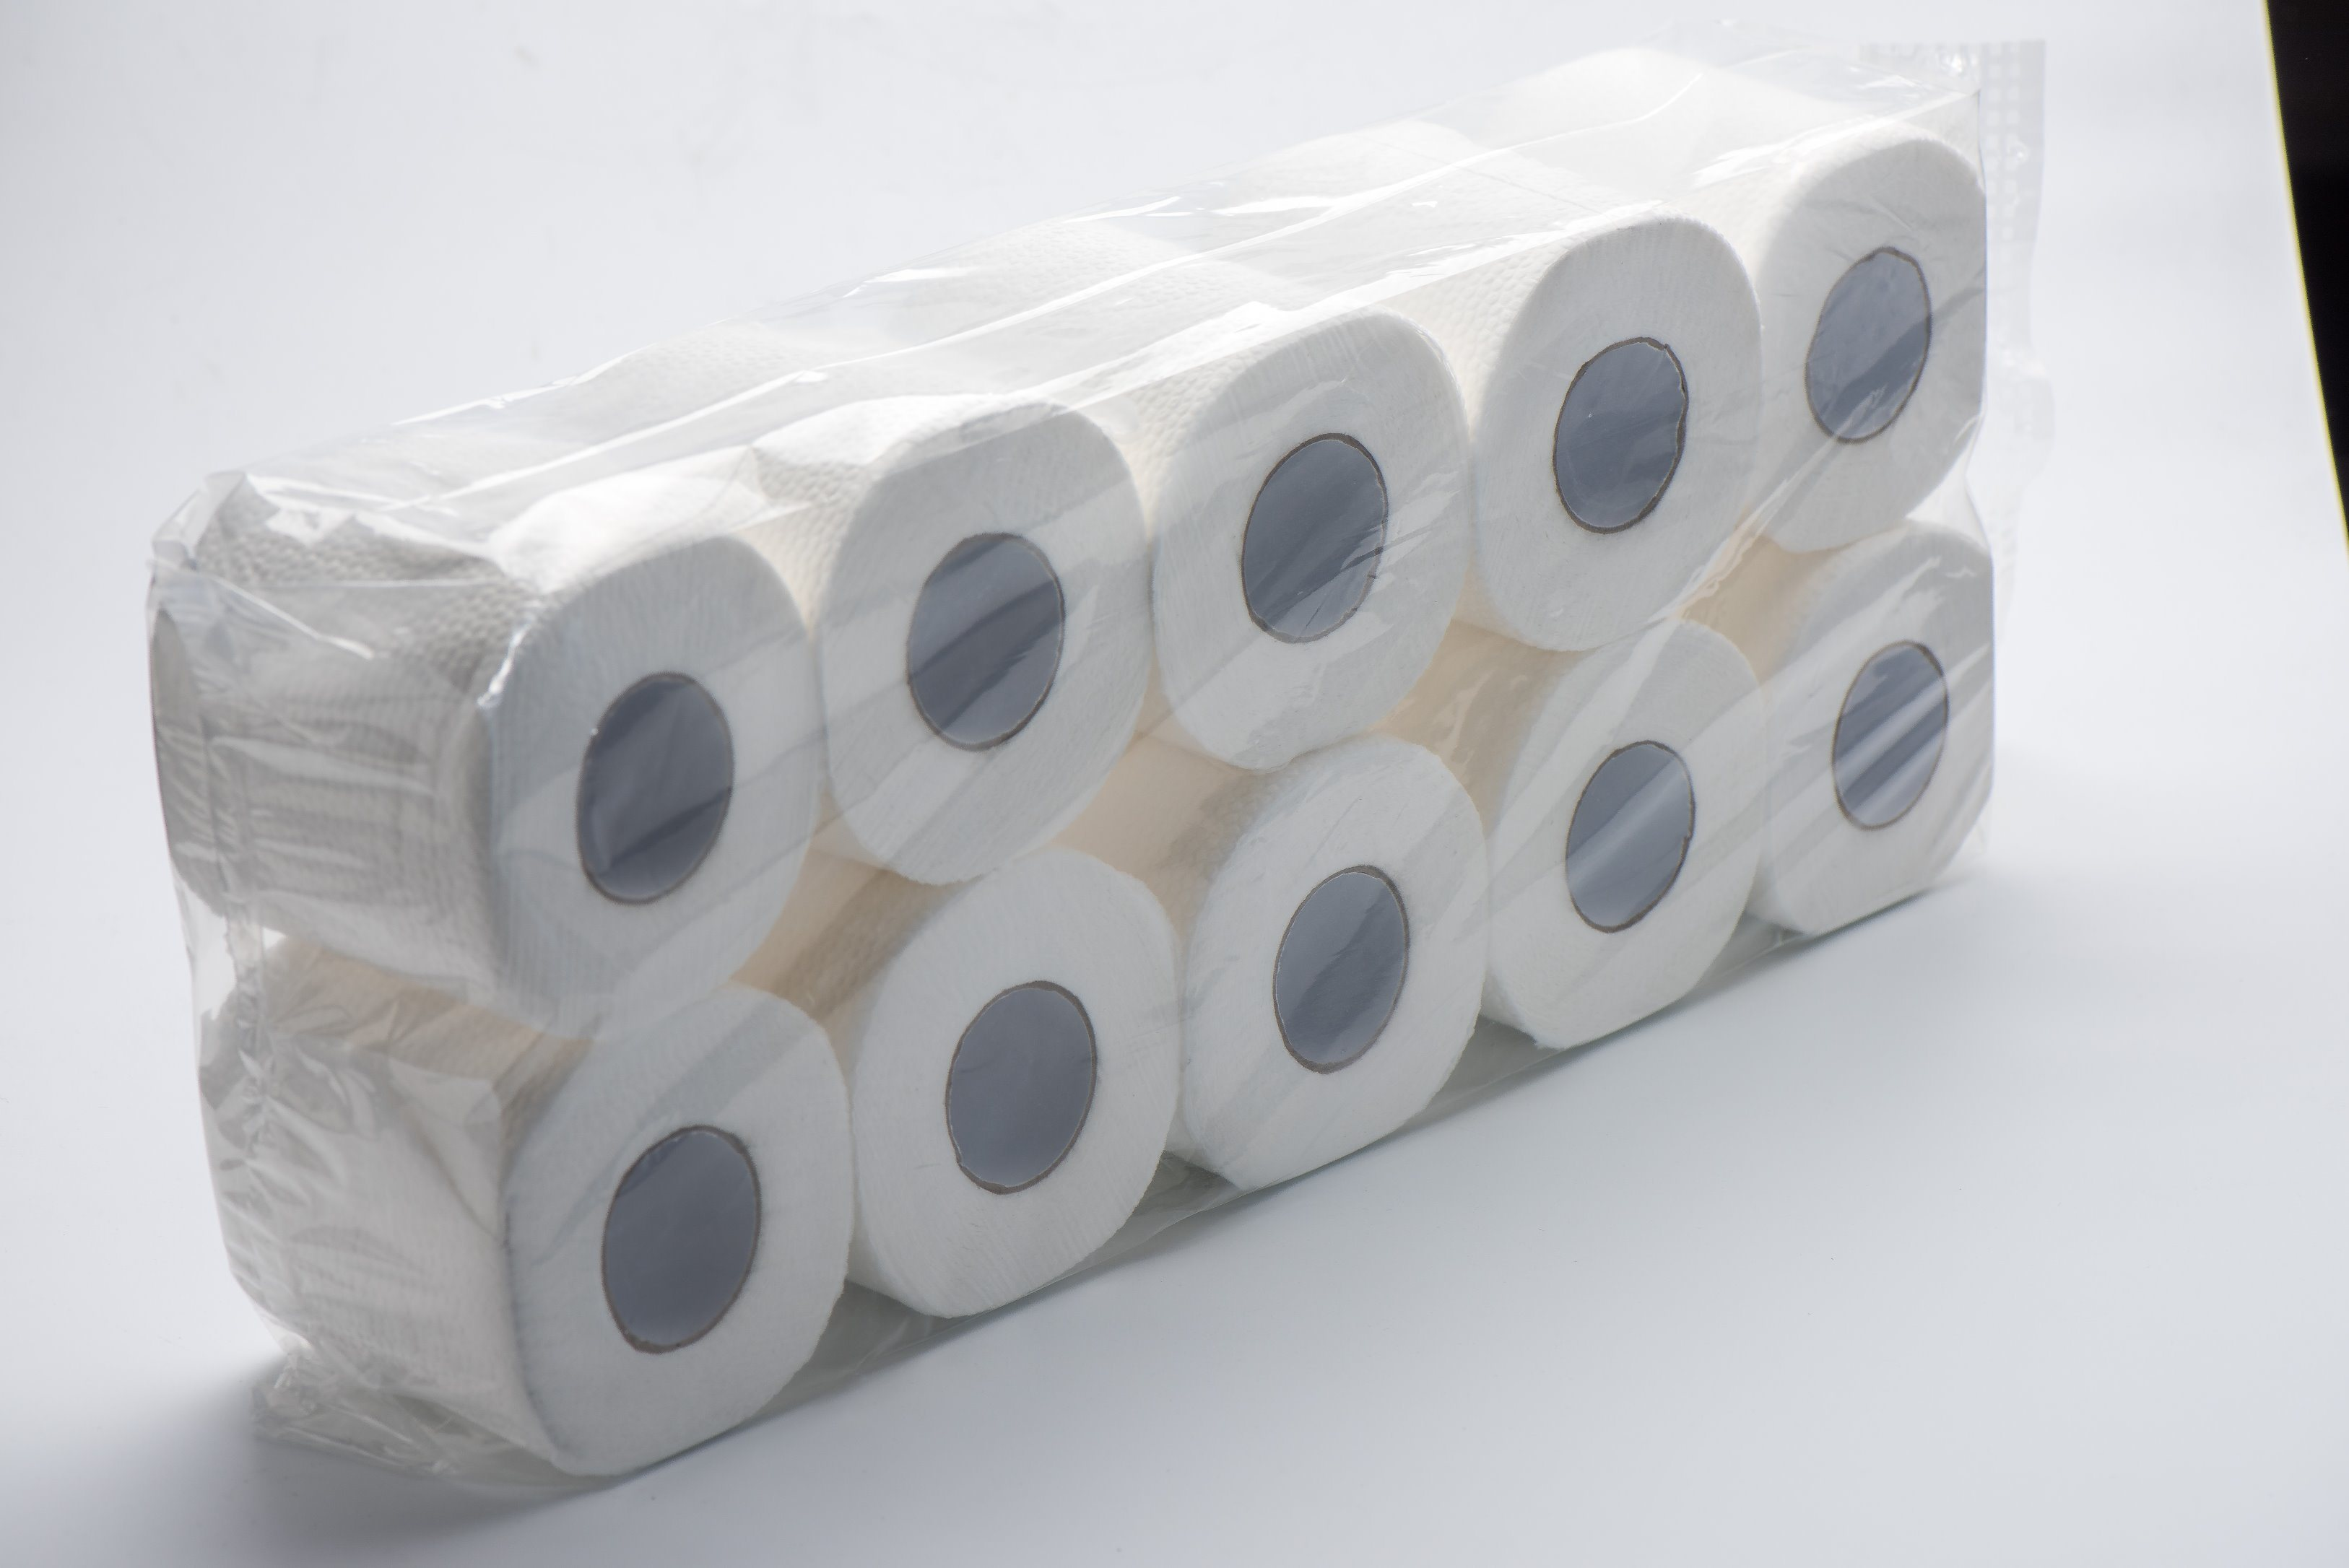 China Factory Customize Toilet Roll Tissue Paper Roll Toilet Paper ...